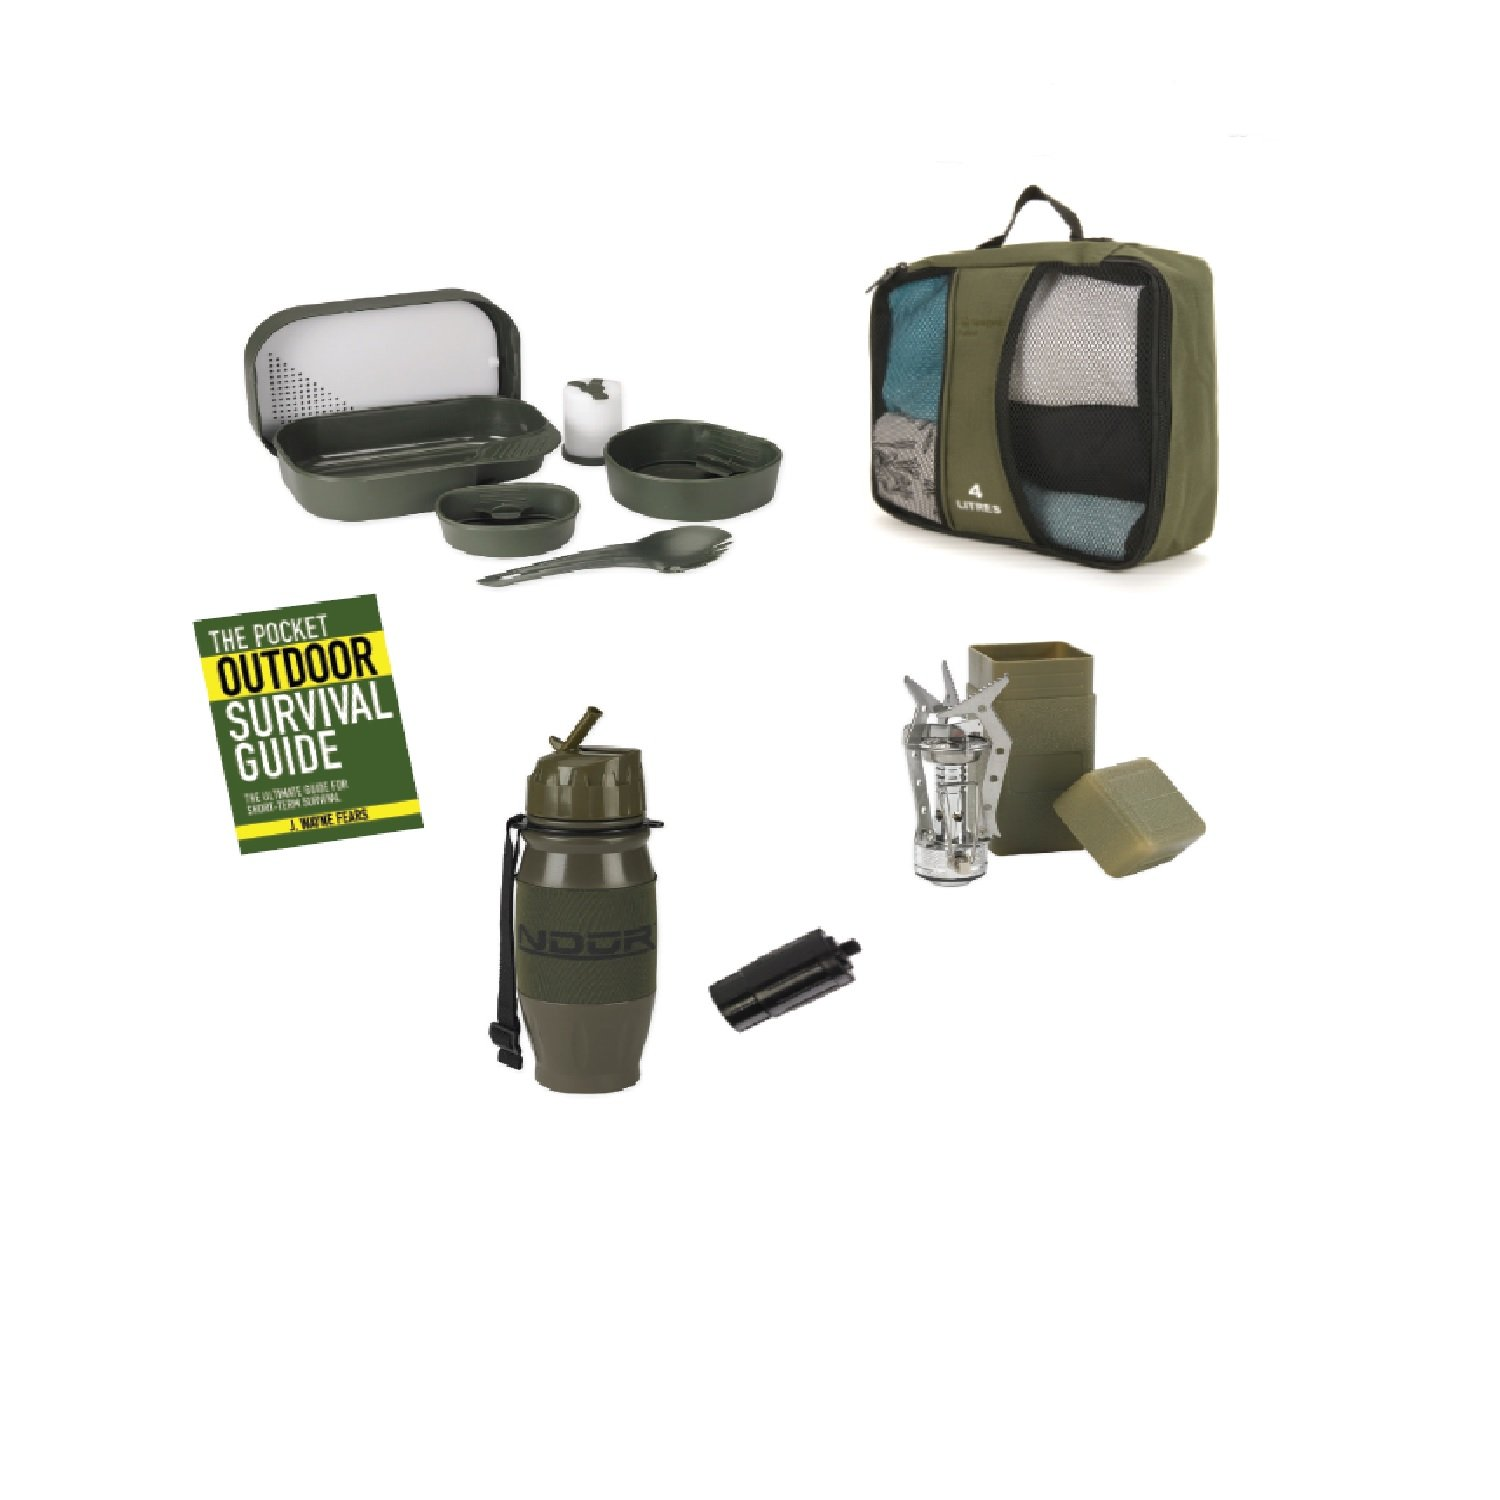 SnugPak Survival Camp Set in Carrying Case BUN102-OB Olive Sportsman Supply Inc 5 Piece